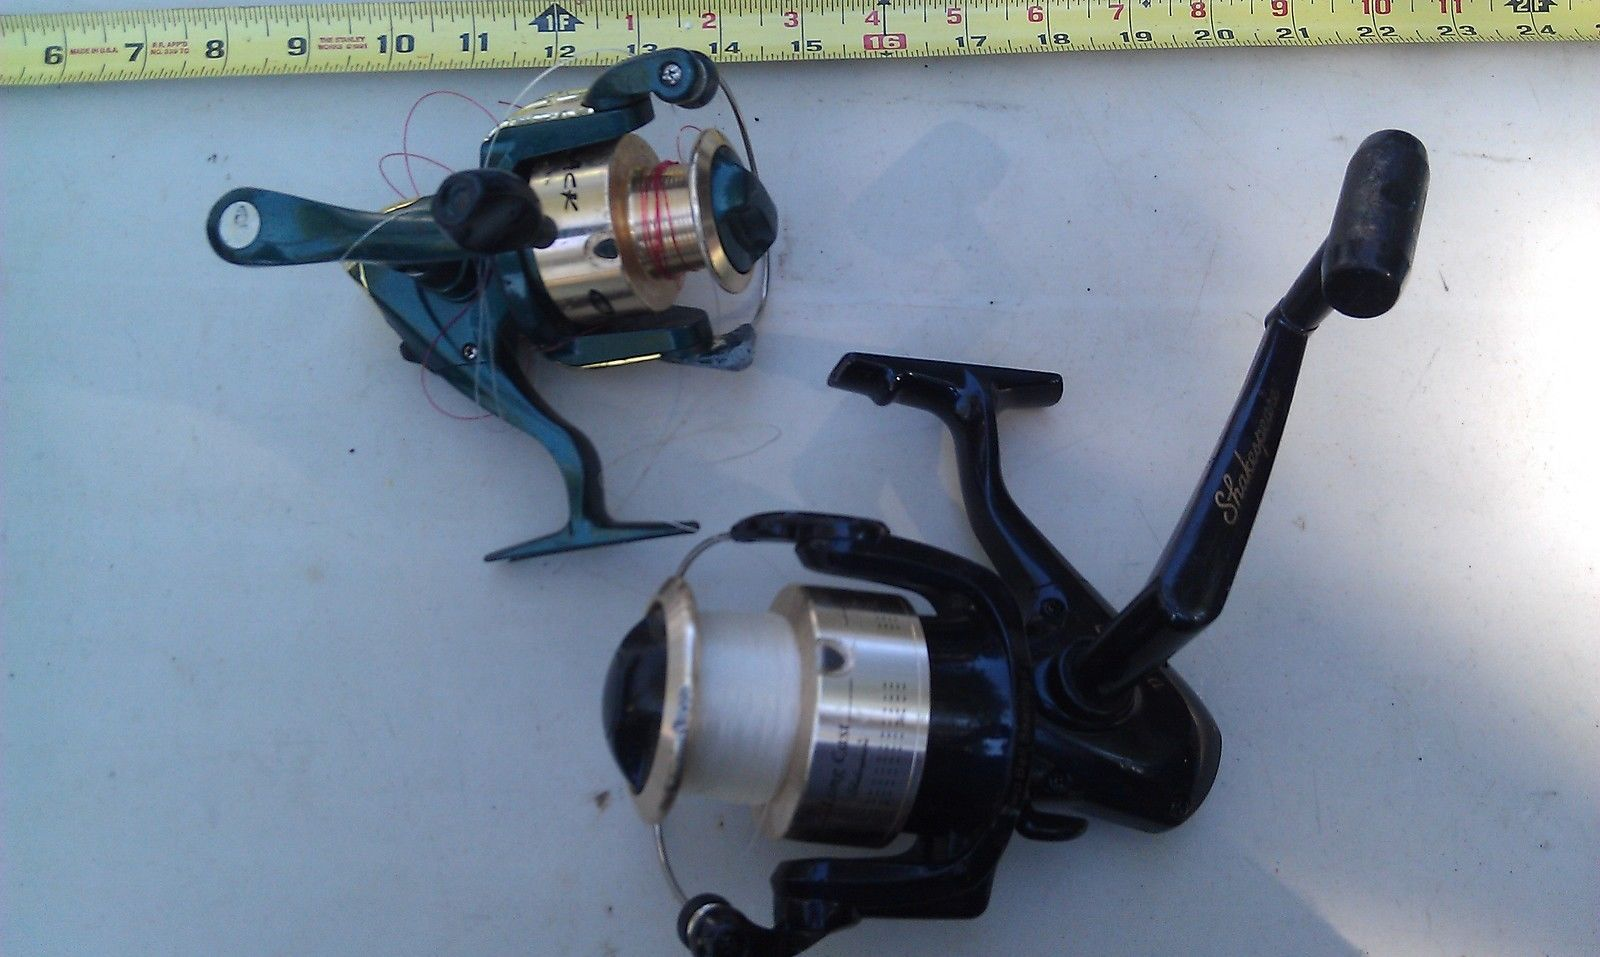 8 H15 2 Fishing Reels For Parts: Shakespeare and 50 similar items